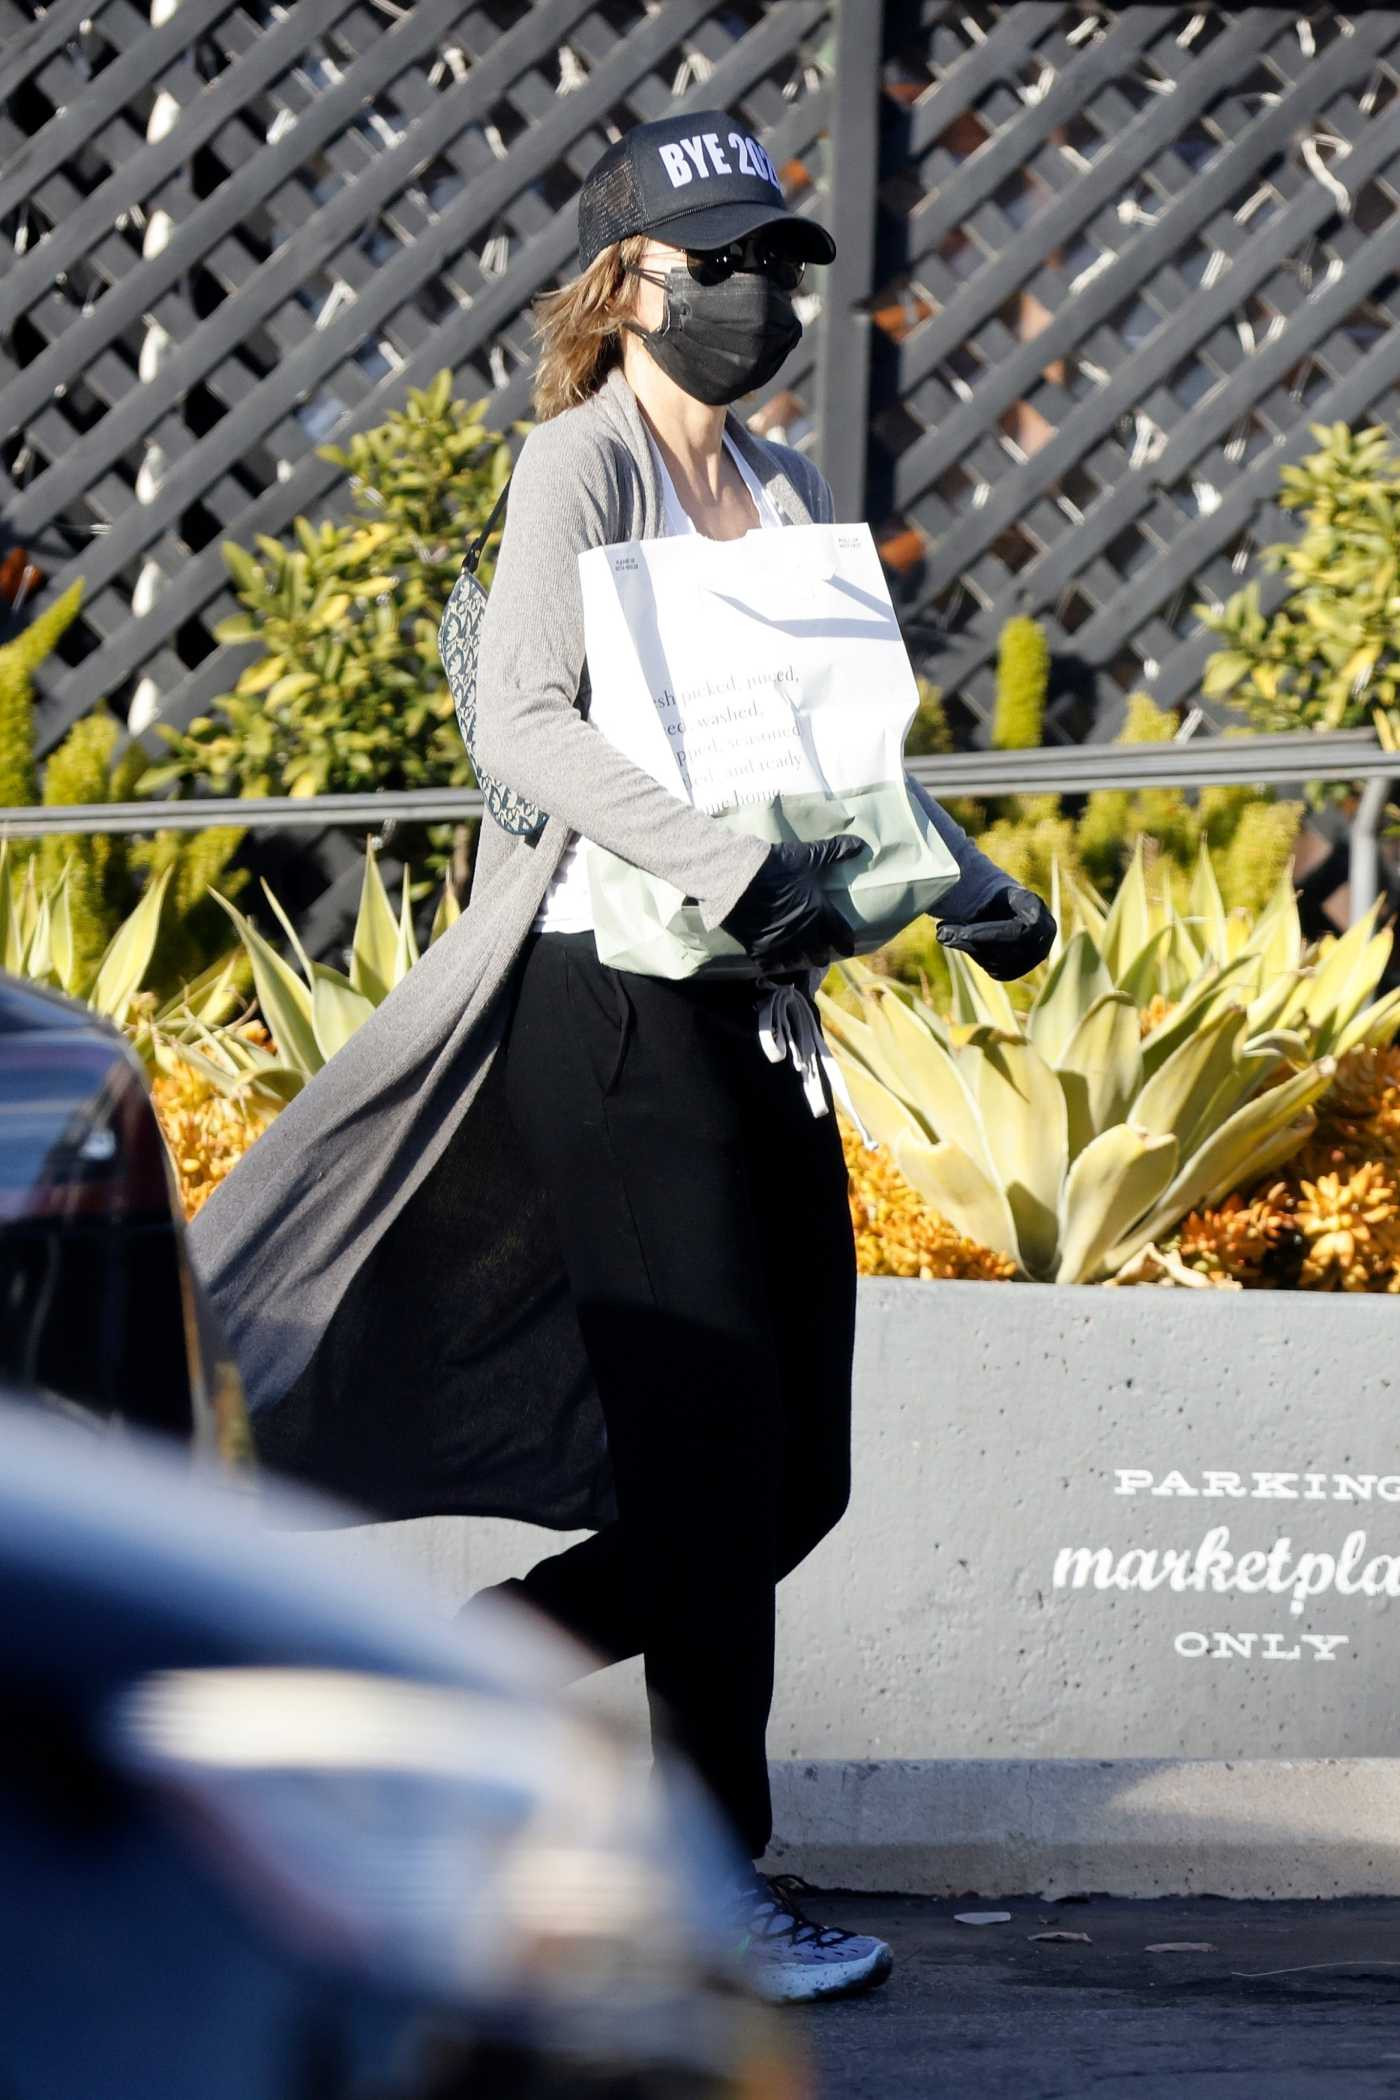 Lisa Rinna in a Black Cap Picks Up Some Food at the Glen Market in Bel Air 12/30/2020